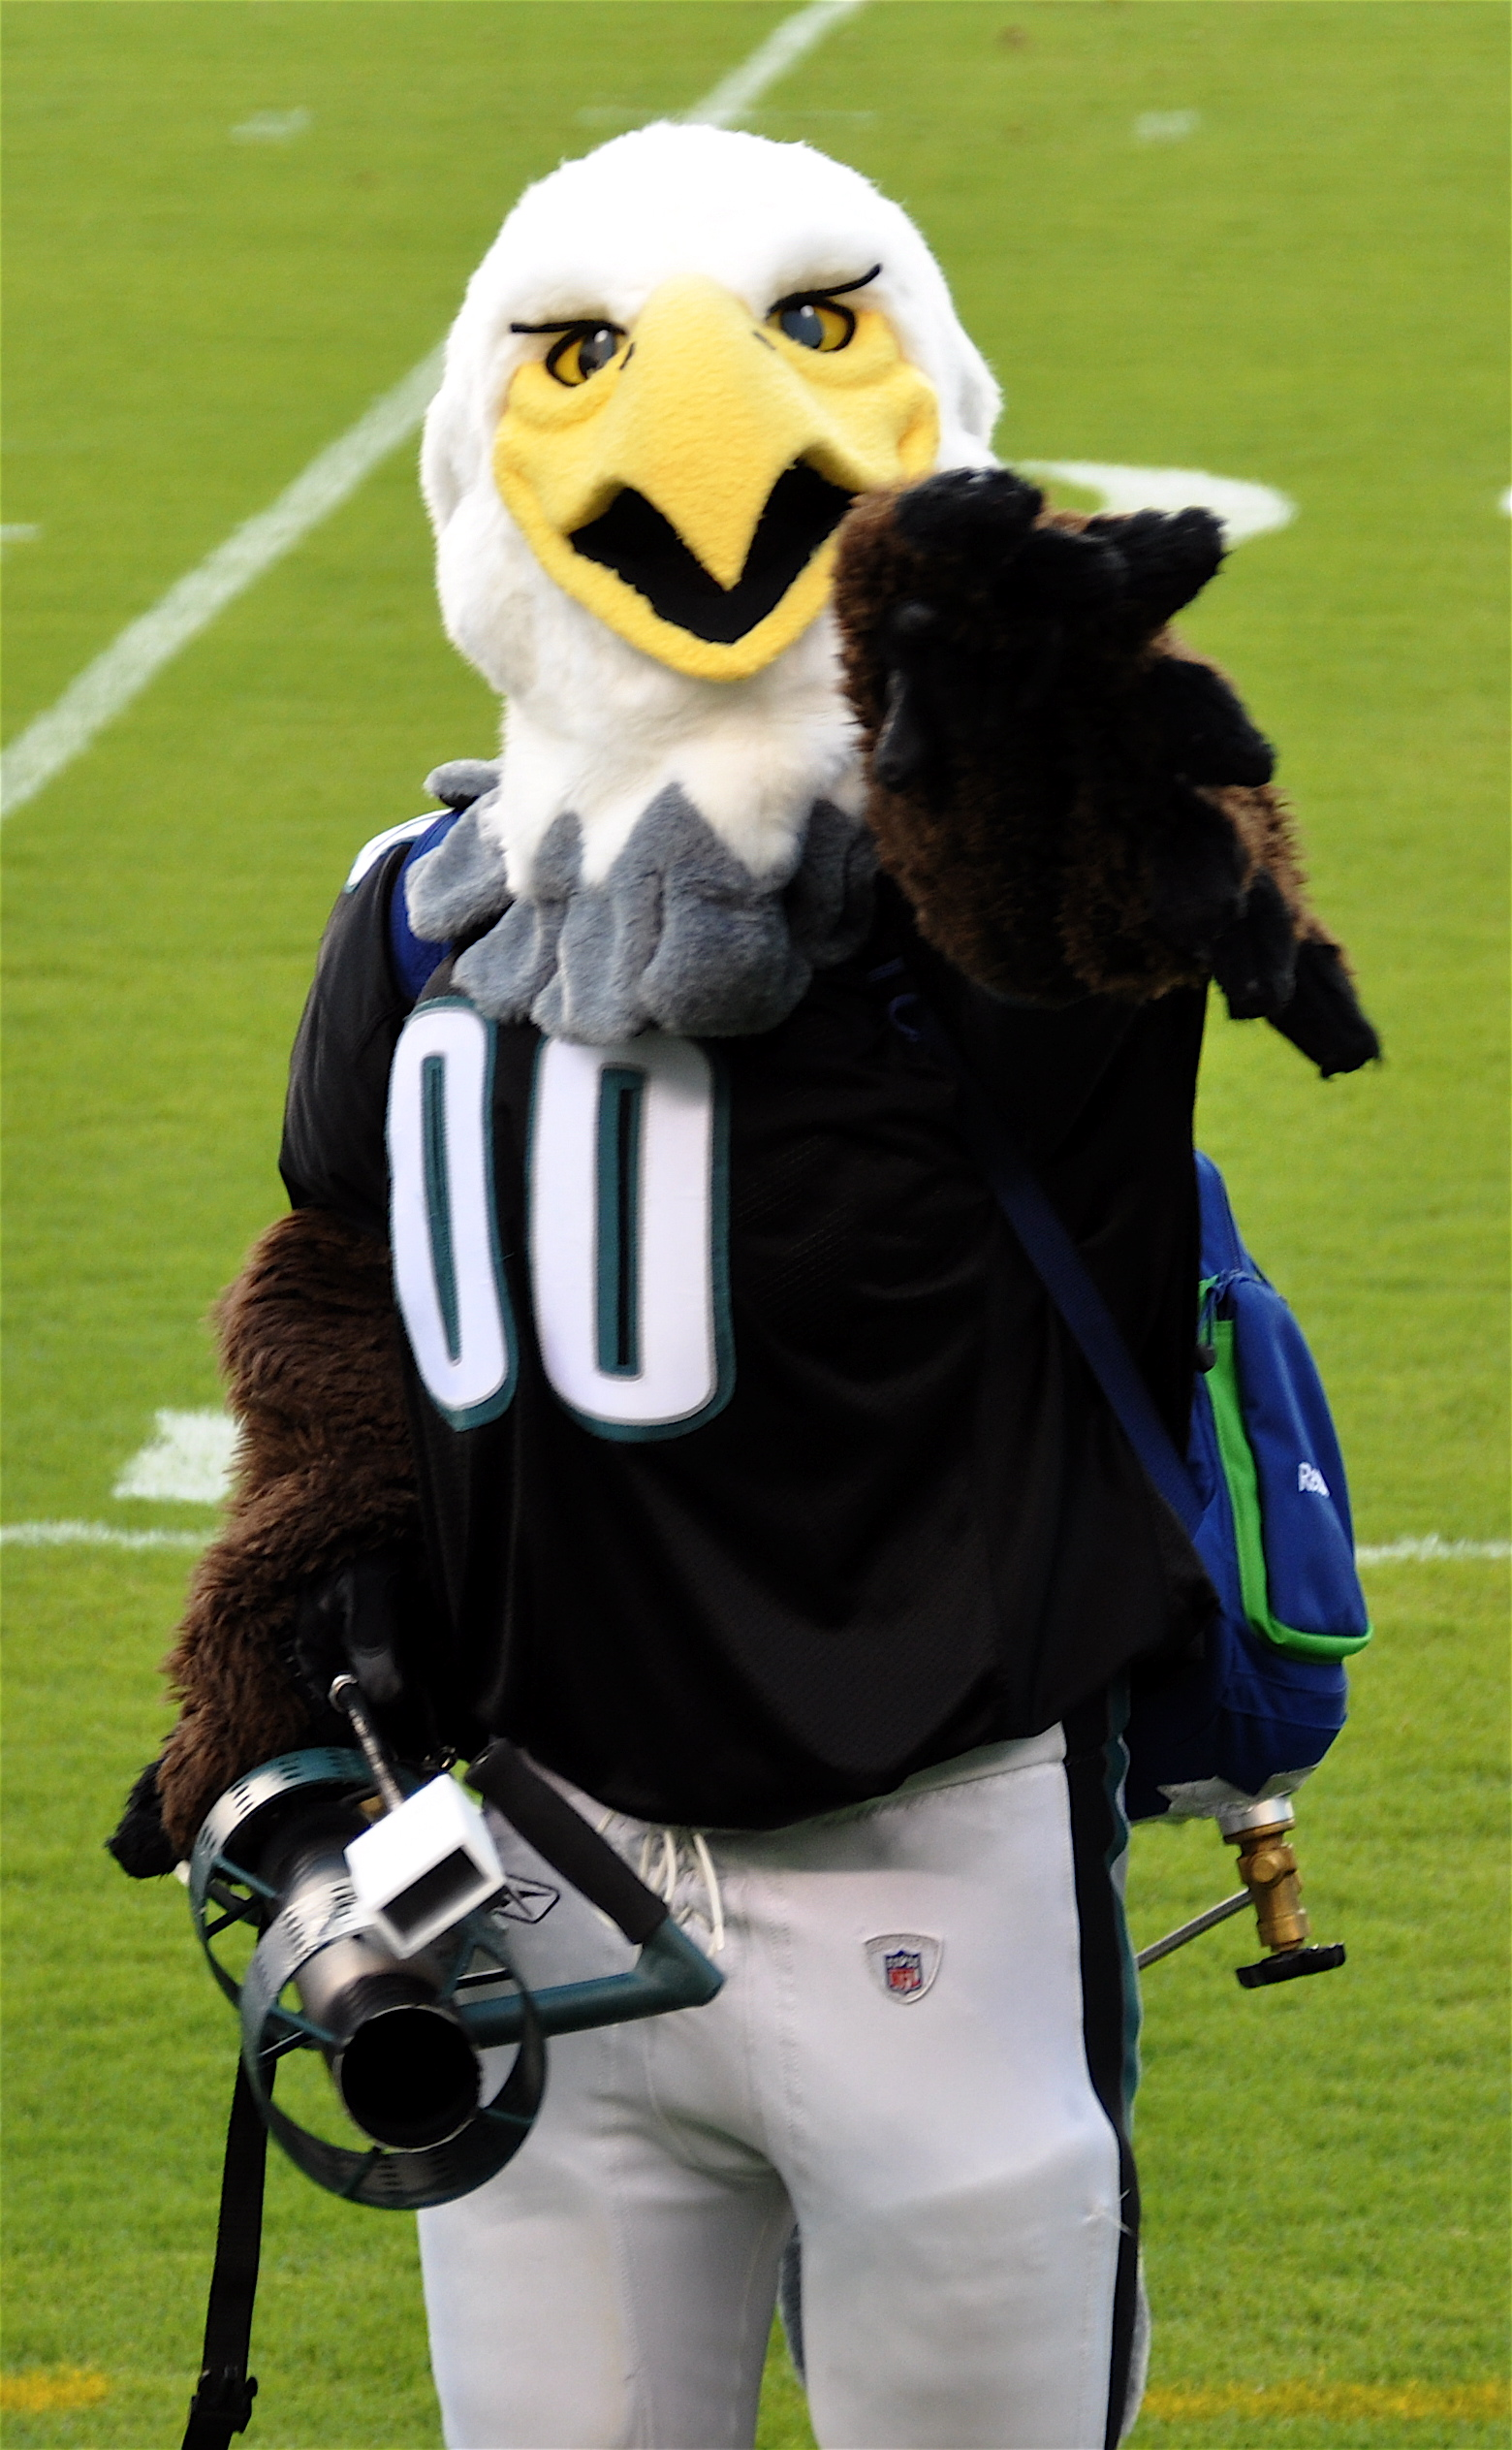 Swoop didn't need to silence Giants fans Sunday night--the Eagles did that all by themselves. Credit: Kevin Burkett. https://goo.gl/hPqNXb